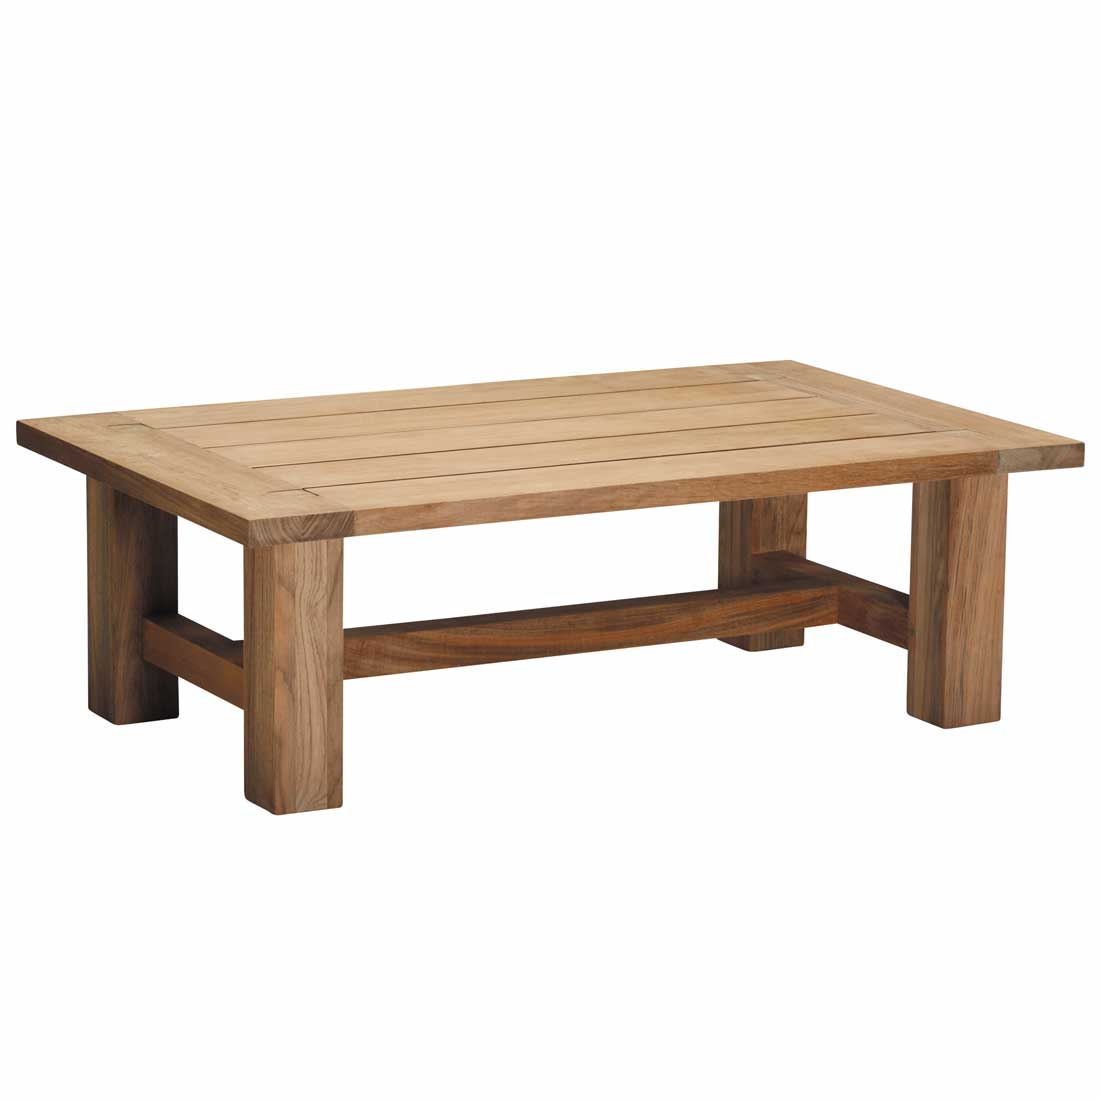 Croquet Outdoor Teak Coffee Table : 28414 from summerclassics.com size 1100 x 1100 jpeg 34kB